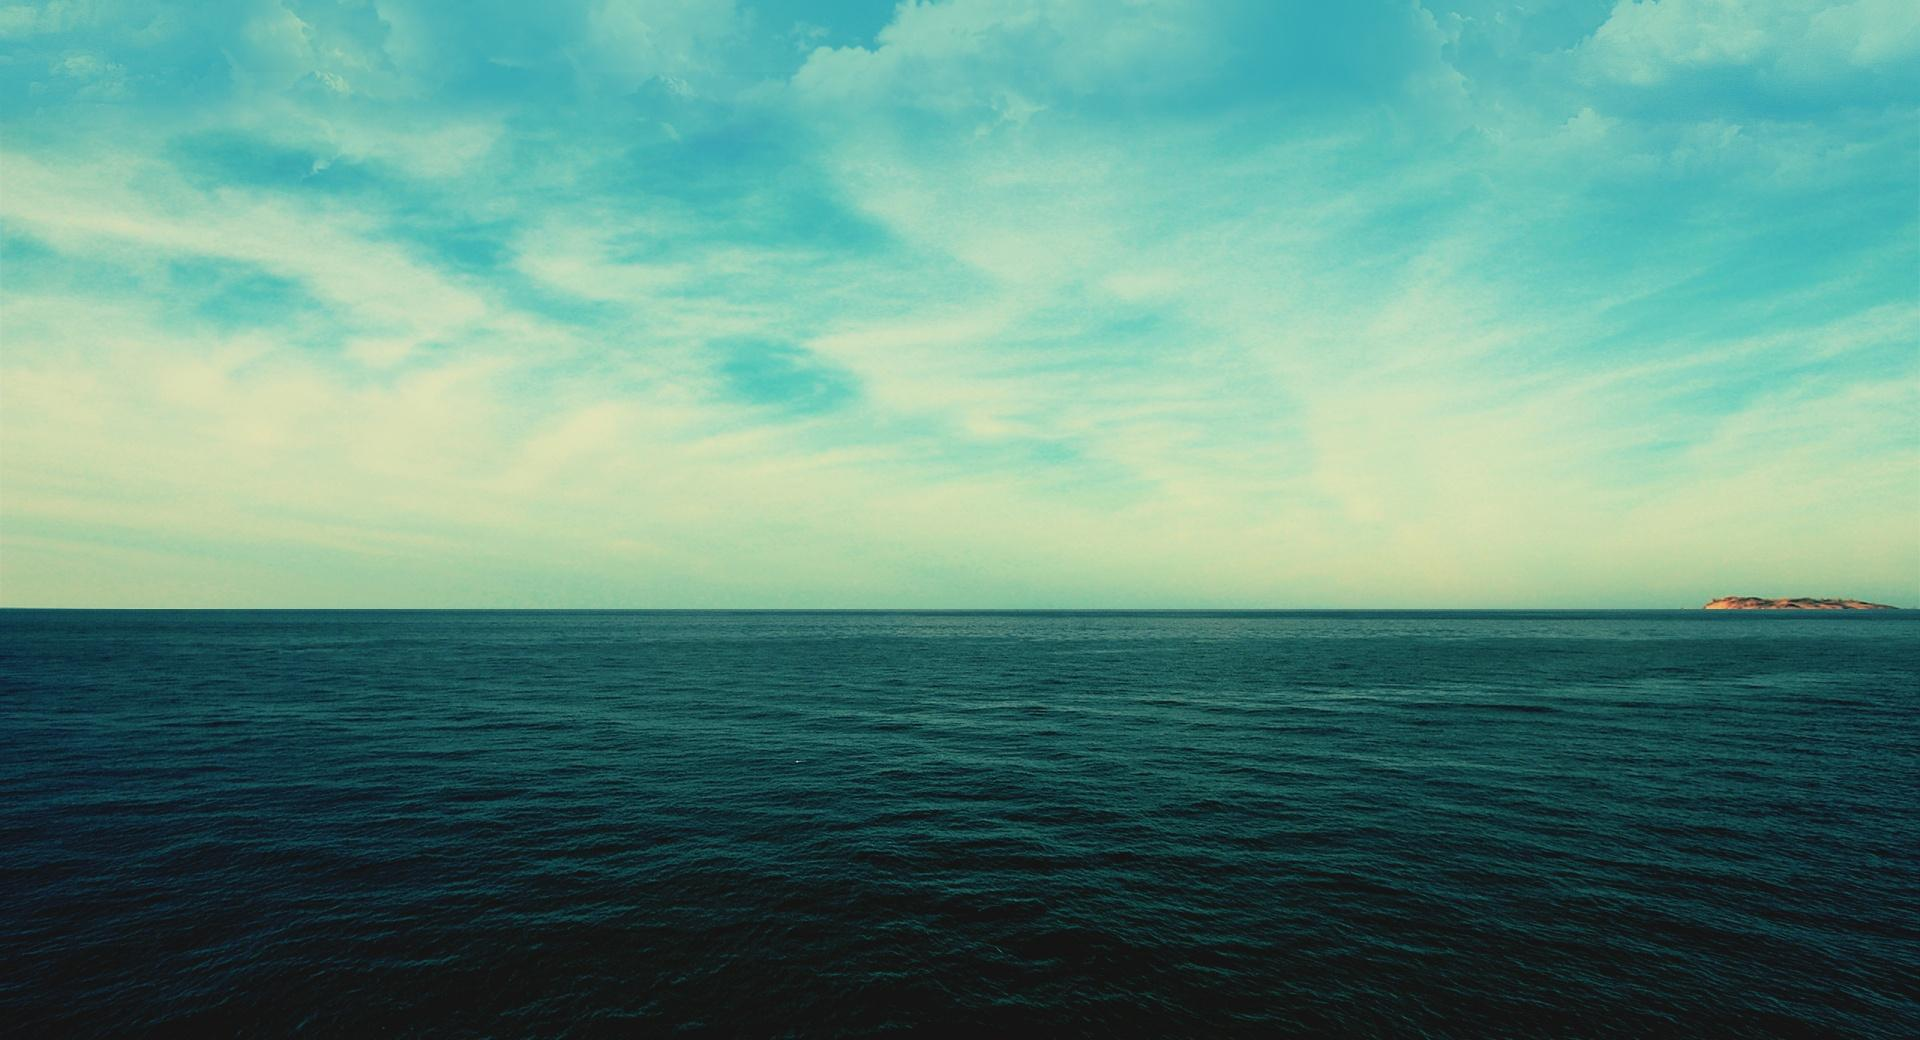 Pefect Ocean wallpapers HD quality